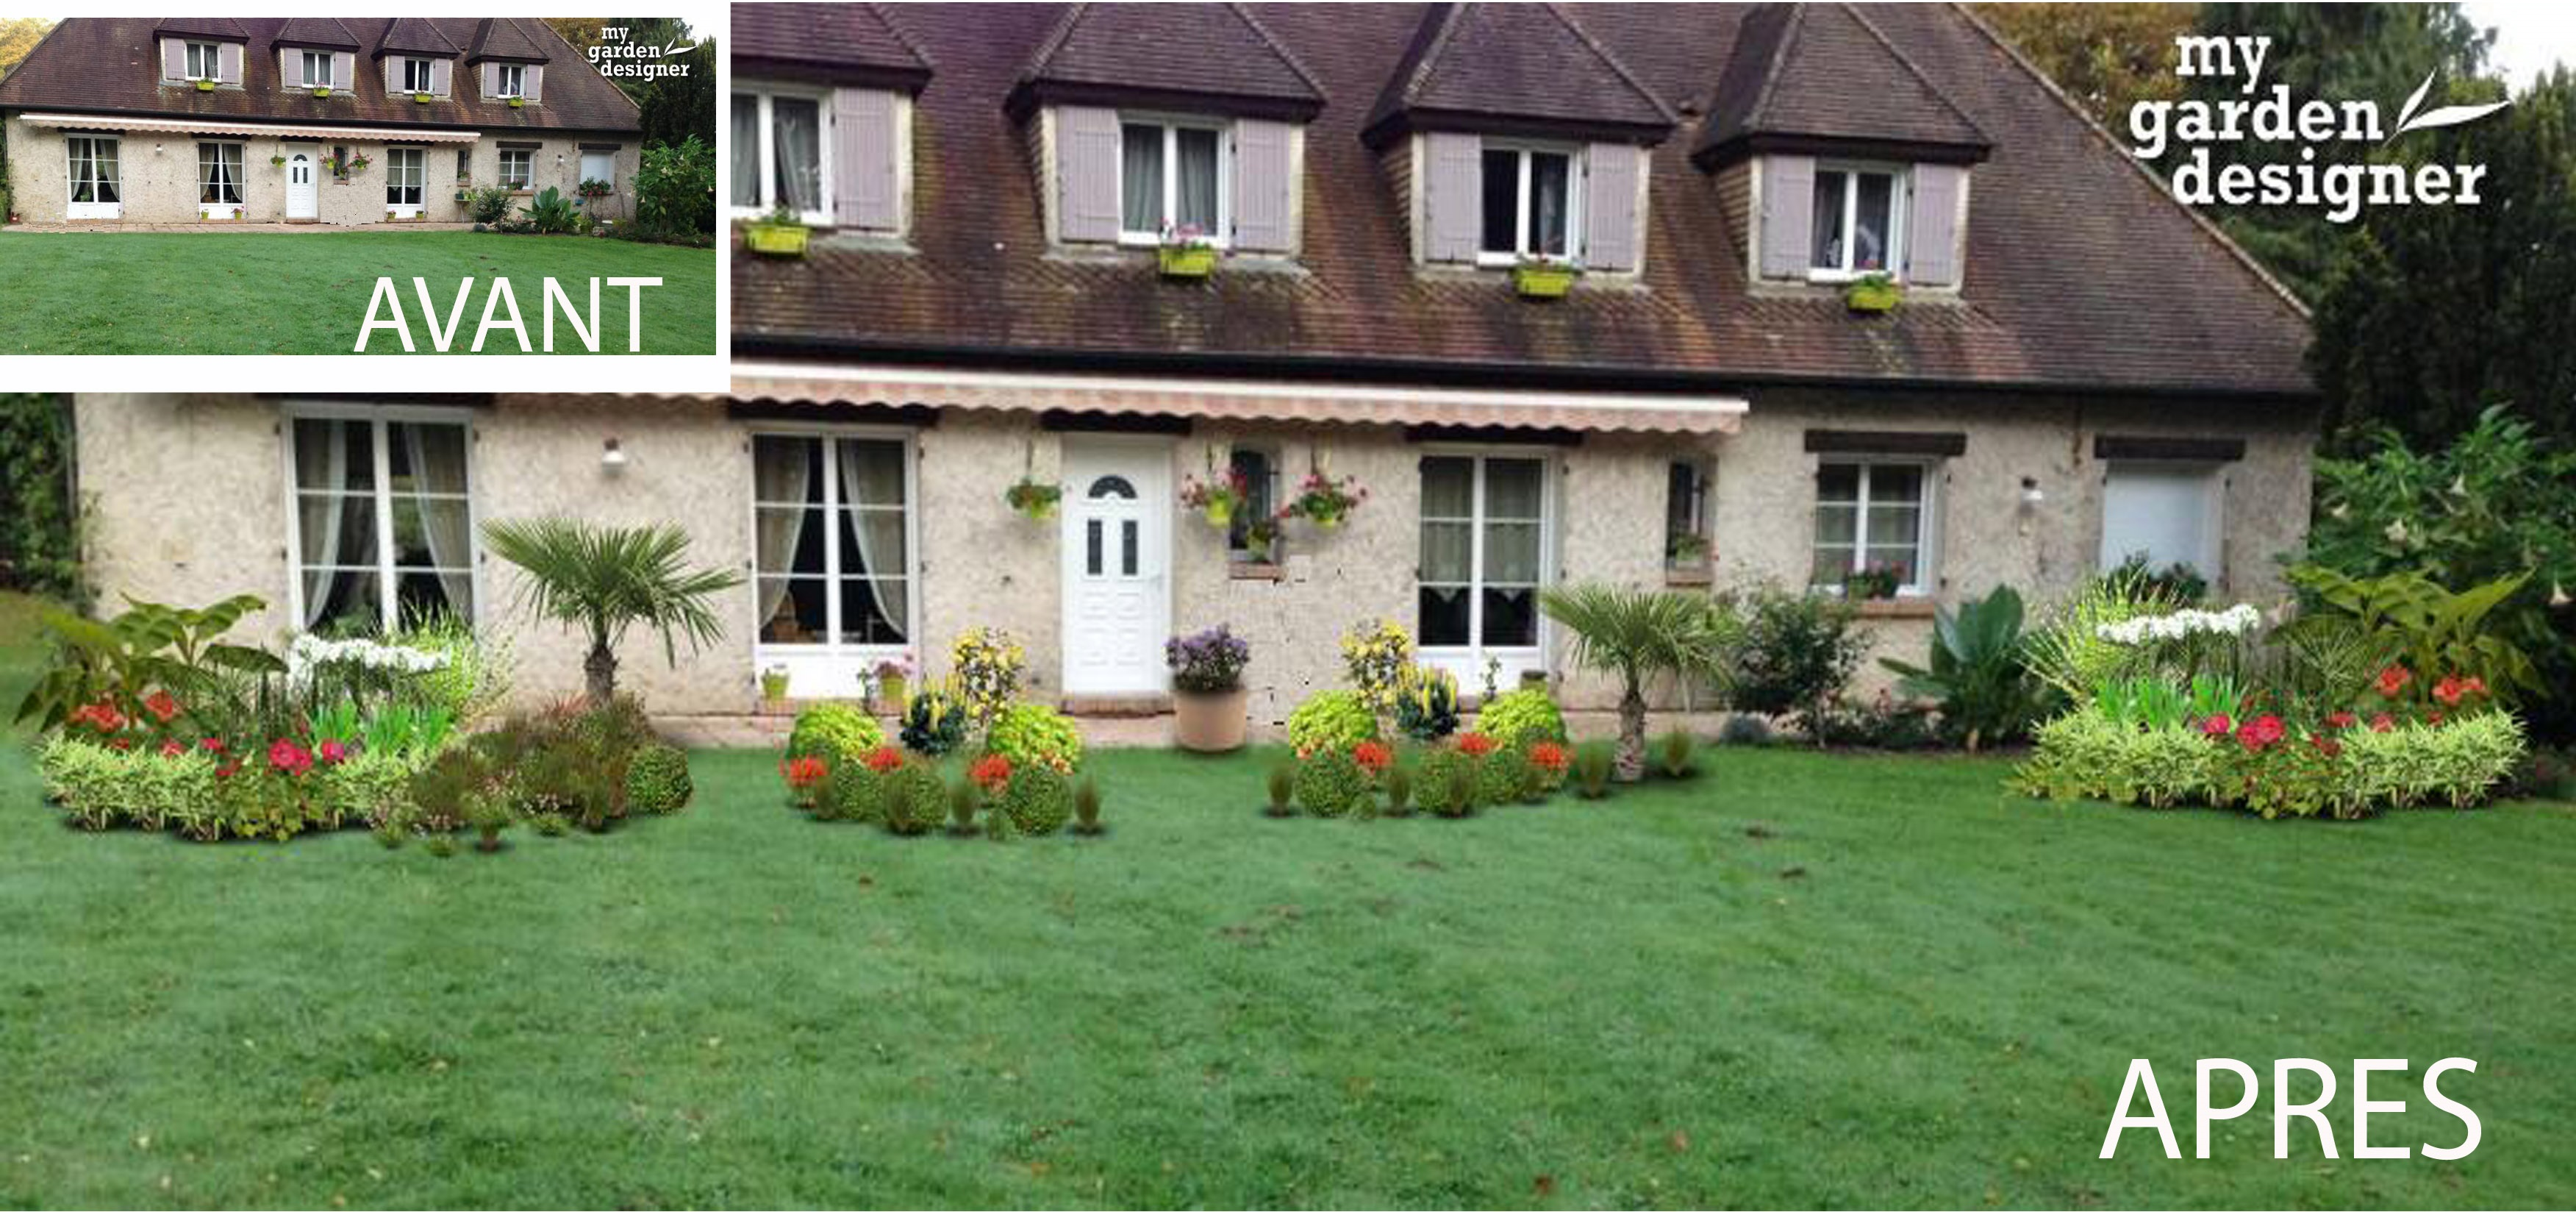 Amenagement d un jardin devant une maison monjardin for Amenagement d un jardin